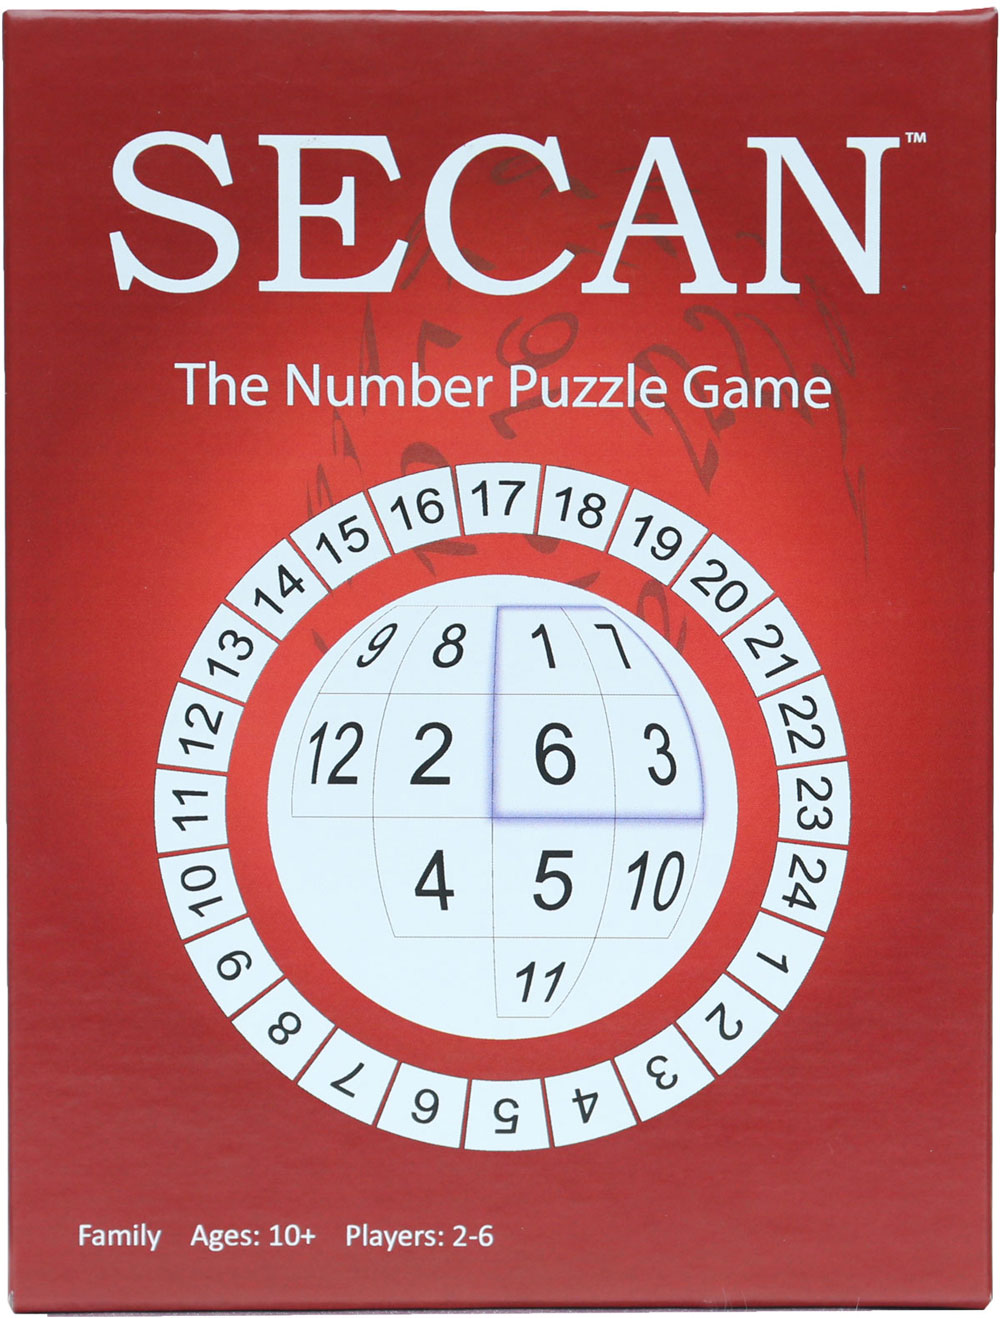 SECAN, the number puzzle game